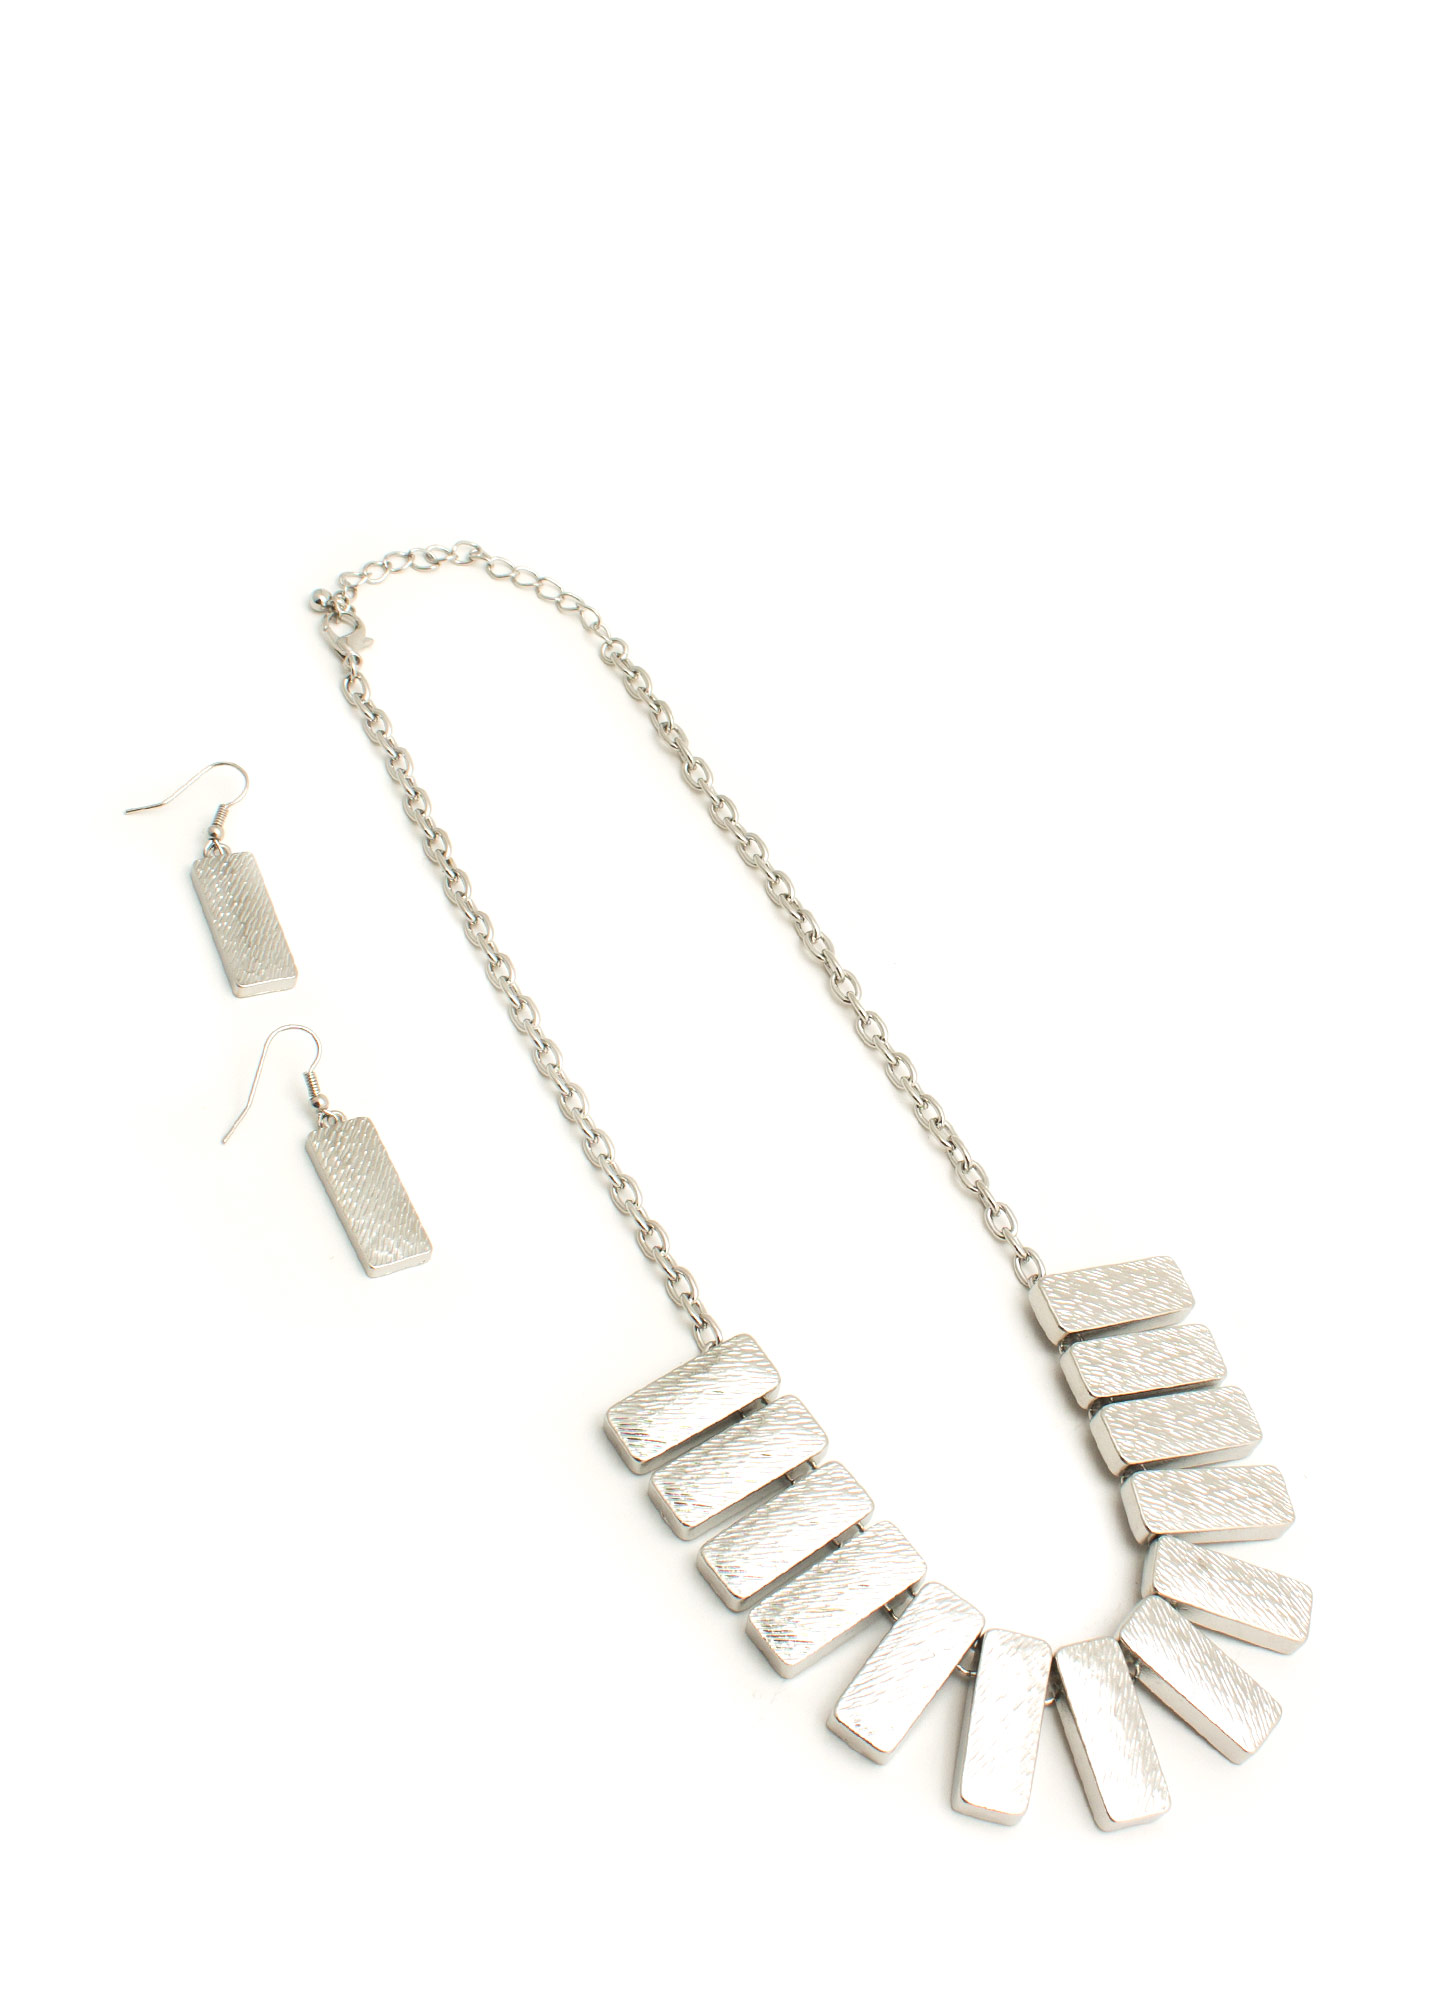 Bib Of Metallic Bars Necklace Set SILVER